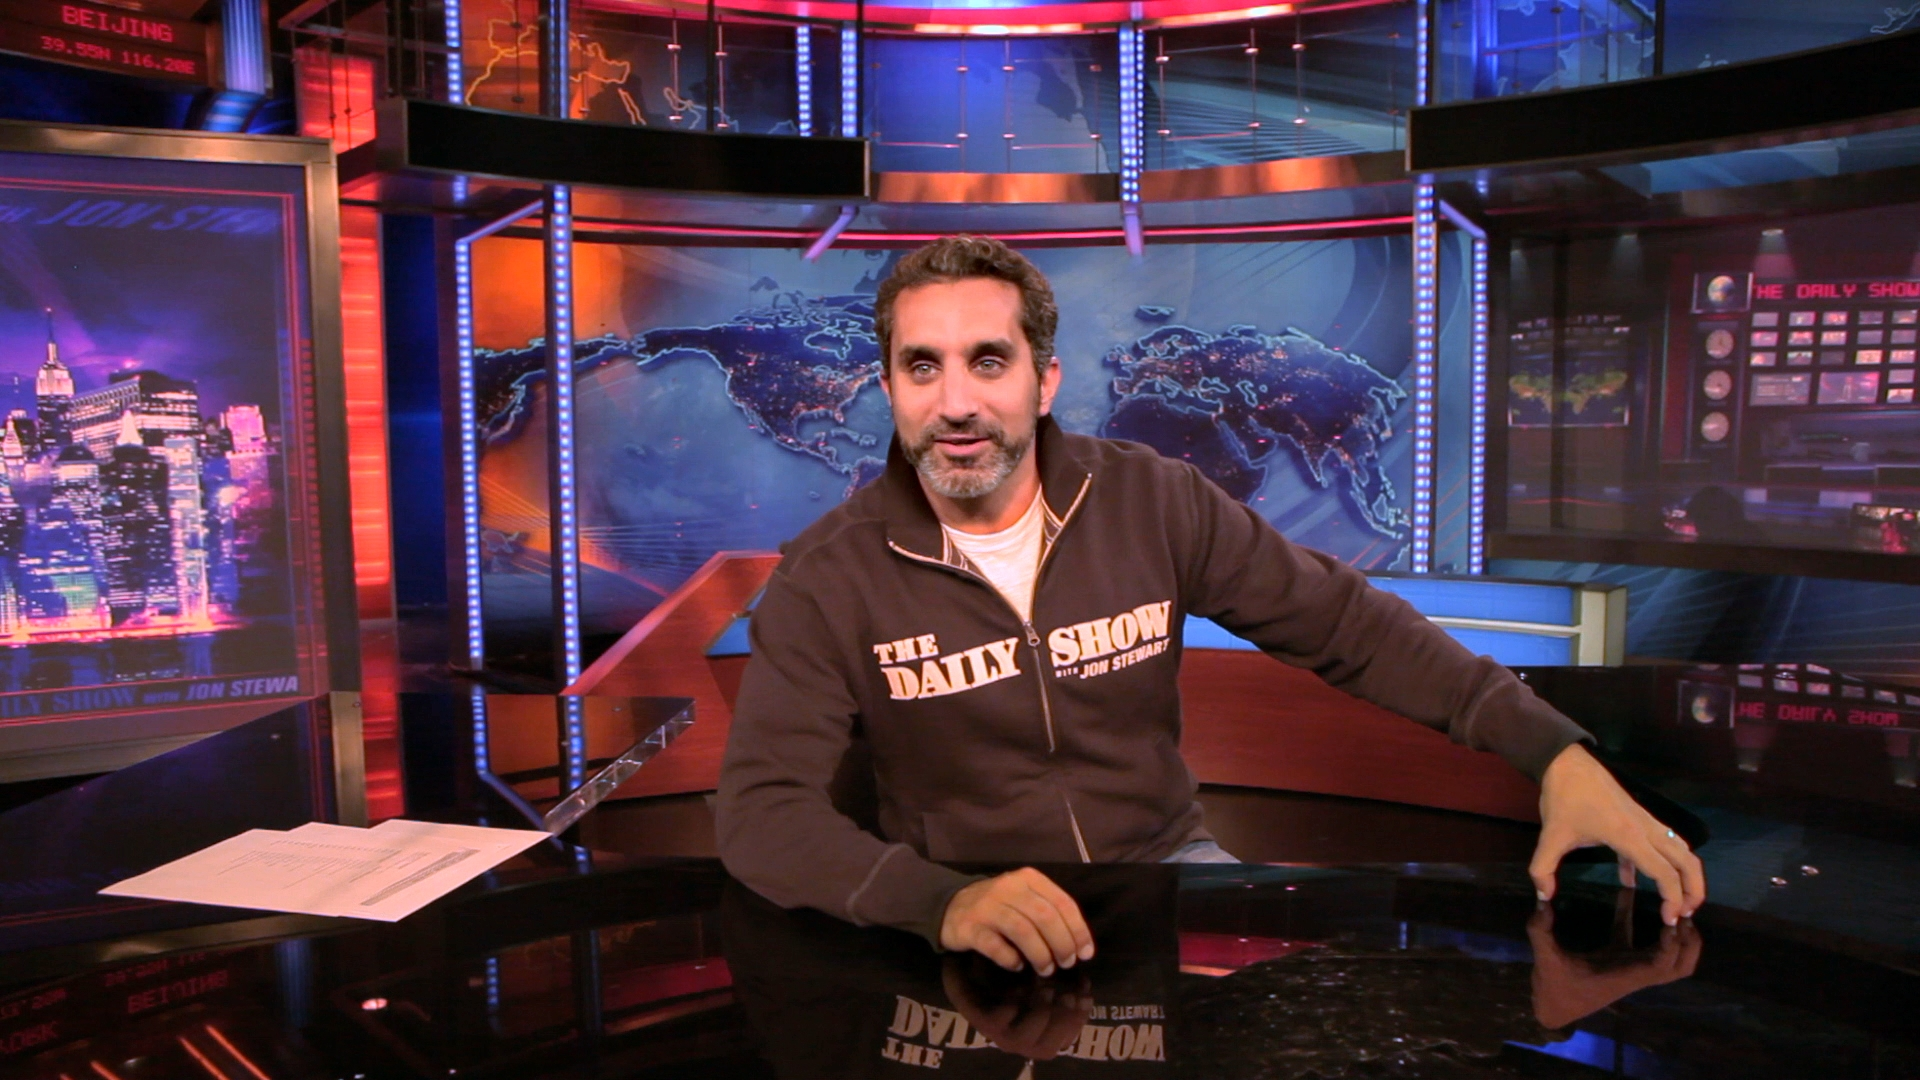 Bassem visits The Daily Show in June 2012.